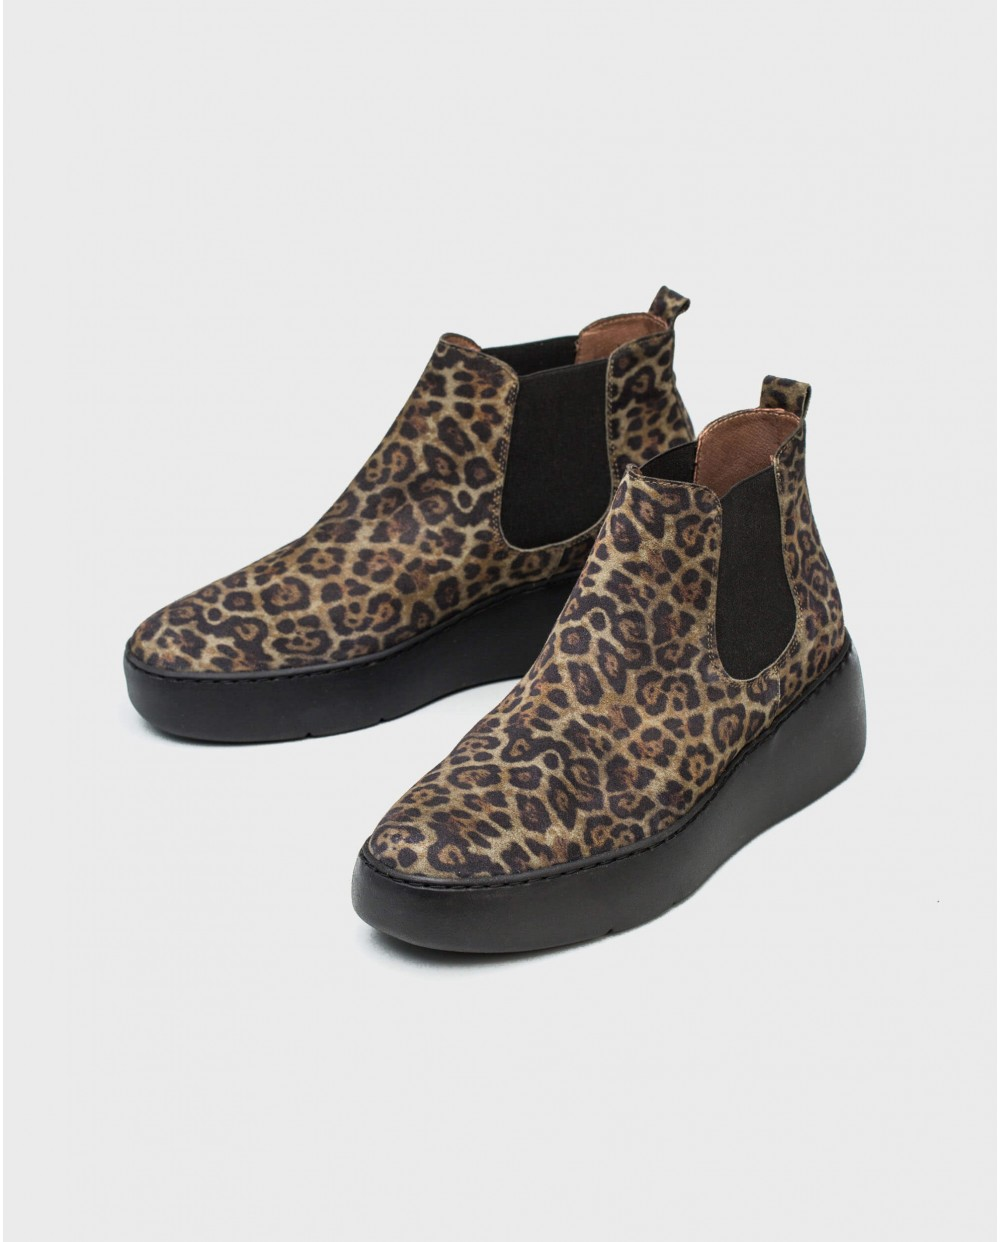 Wonders-Ankle Boots-Animal print suede leather ankle boot